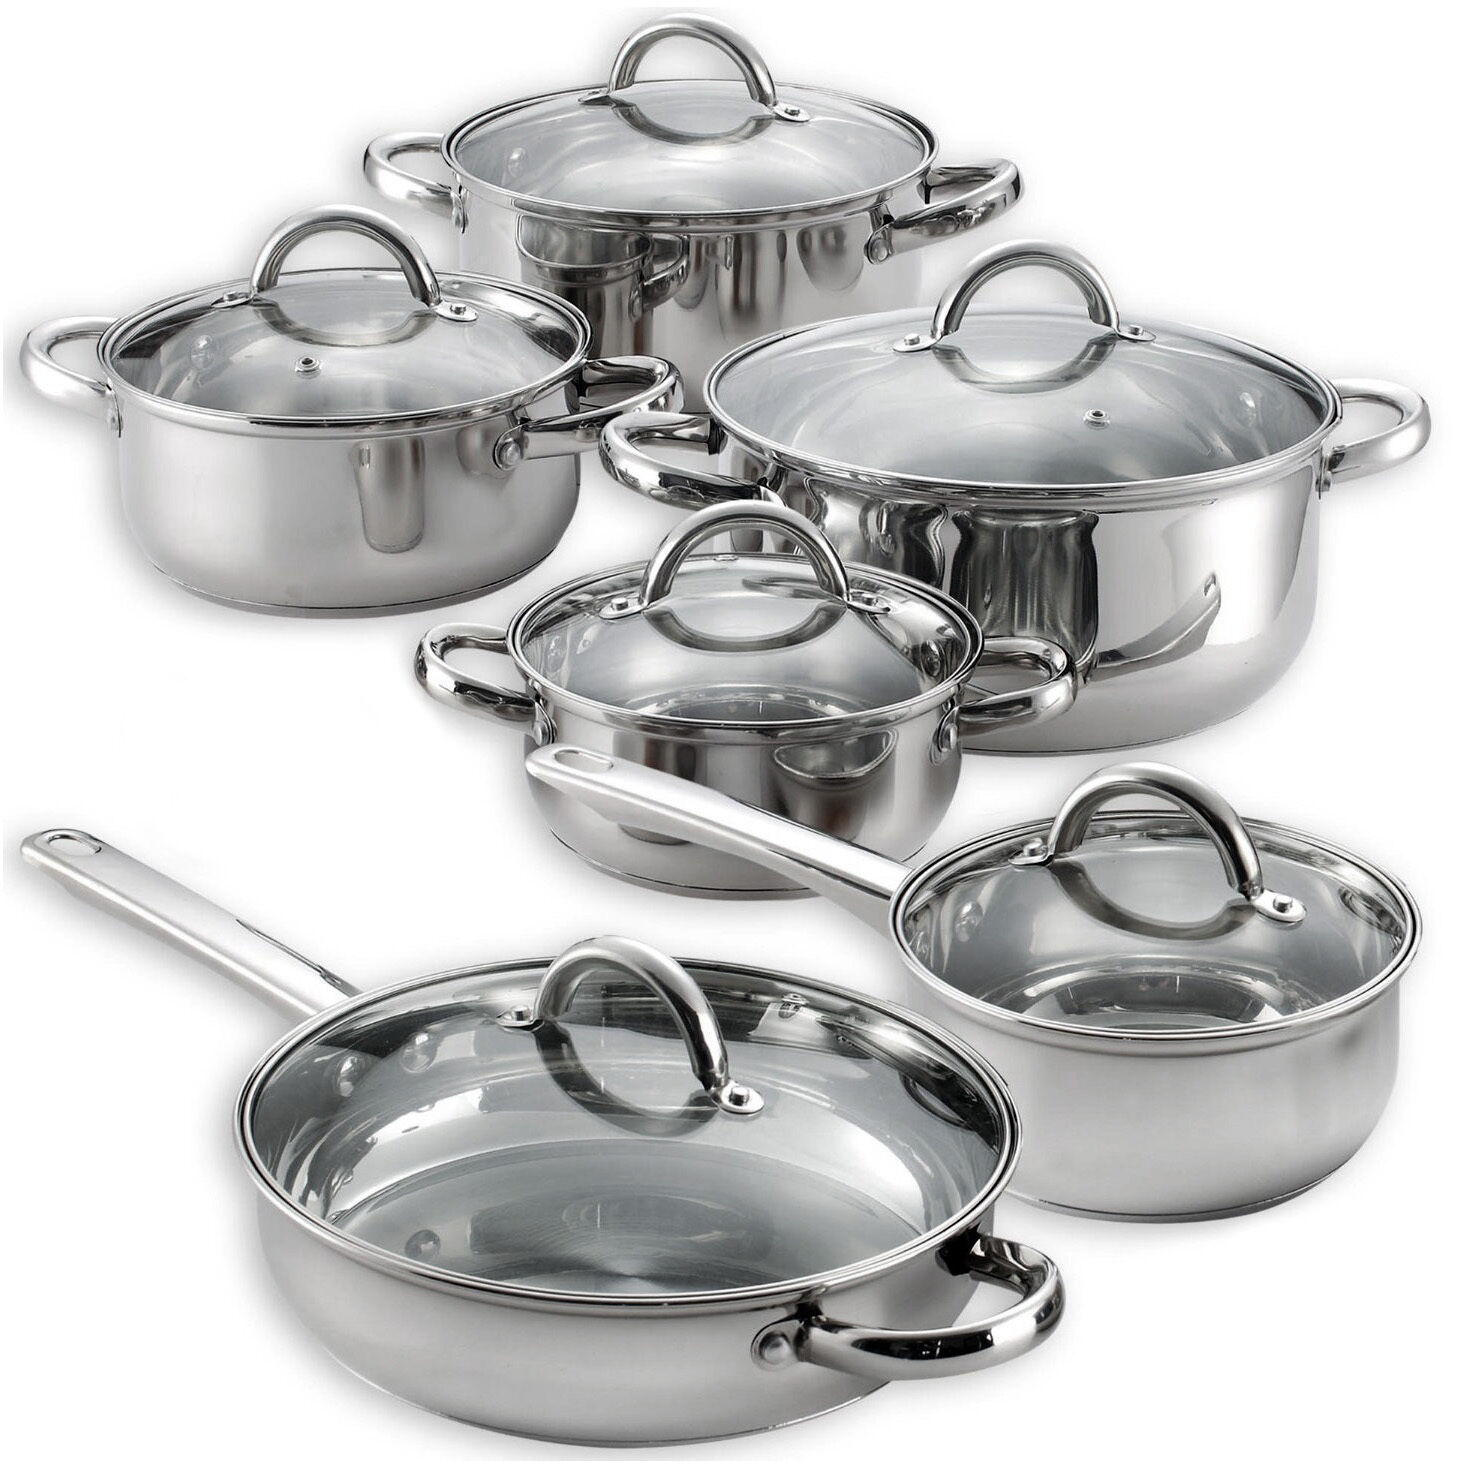 heim 39 s 12 pieces cooking pots and pans kitchen stainless steel cookware set lids ebay. Black Bedroom Furniture Sets. Home Design Ideas